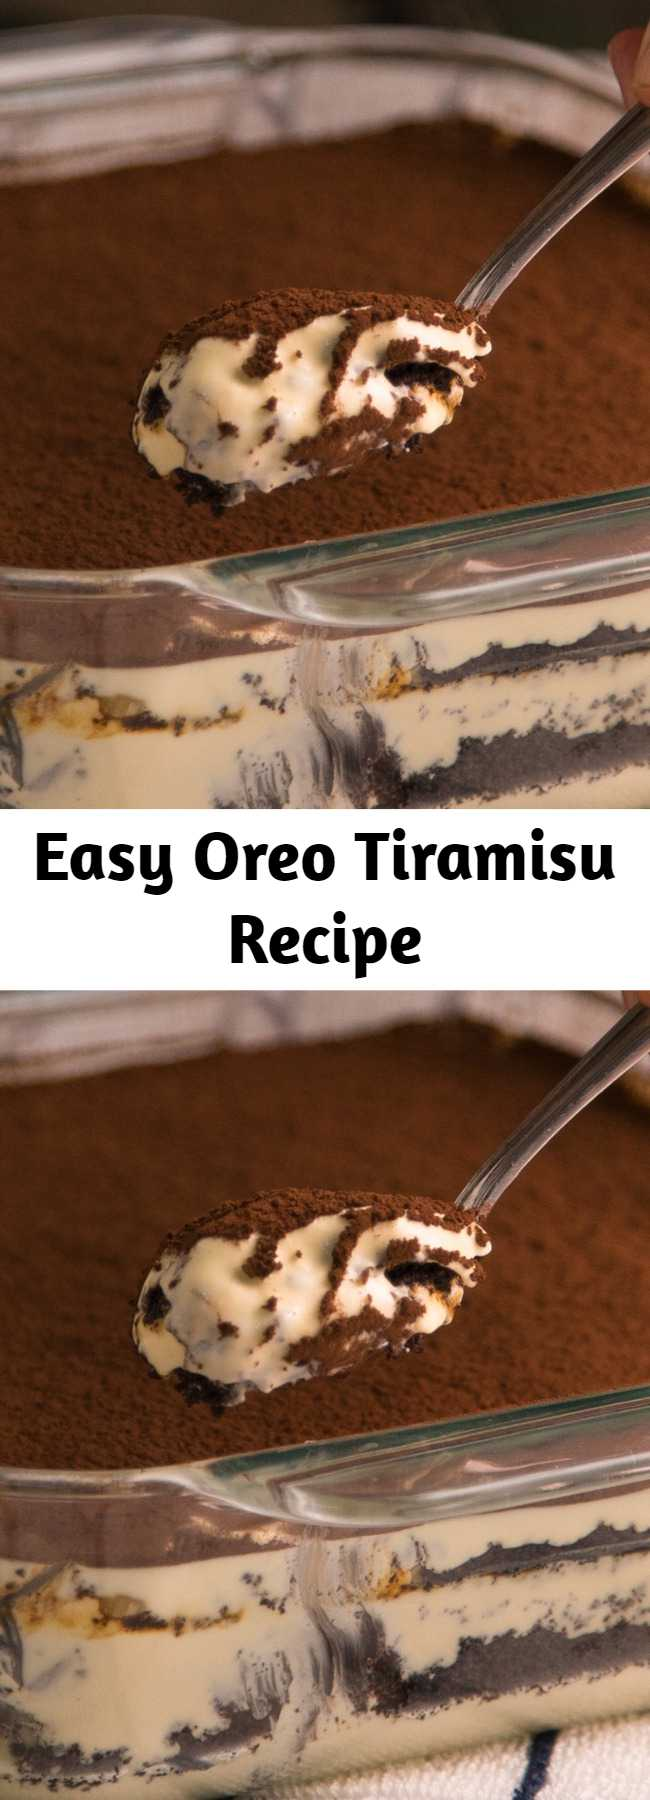 Easy Oreo Tiramisu Recipe - We're layering your two favorite desserts to give you all the feels.